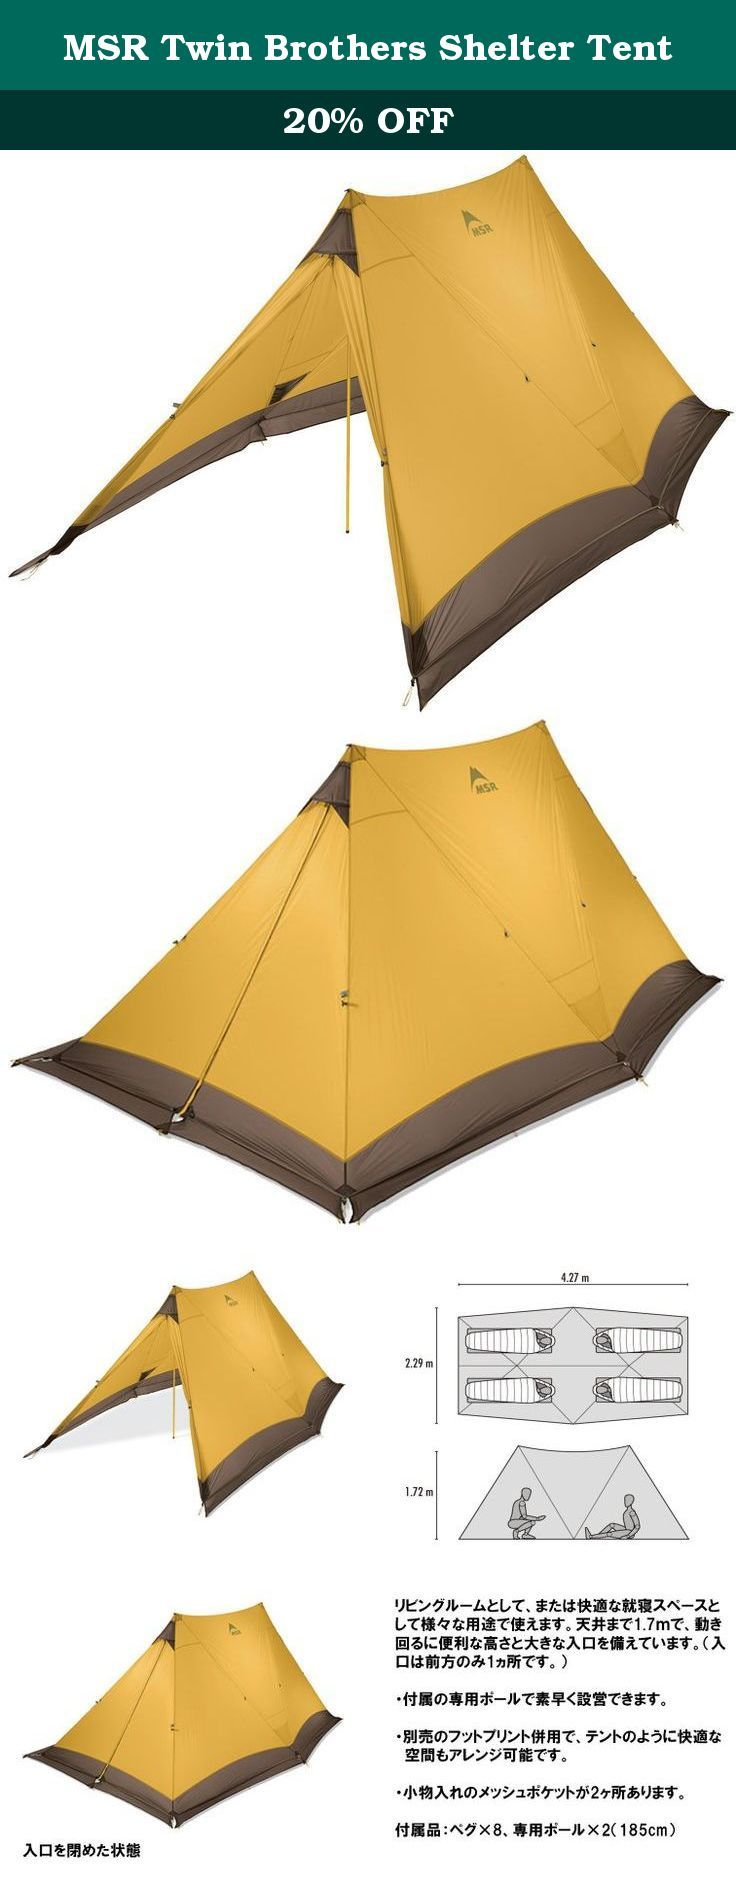 MSR Twin Brothers Shelter Tent. The Twin Sistersu0027 big brother providing protection for a group of six. Capacity 4-6 Min weight 2.2kg/4lbs 14ozu2026  sc 1 st  Pinterest & MSR Twin Brothers Shelter Tent. The Twin Sistersu0027 big brother ...